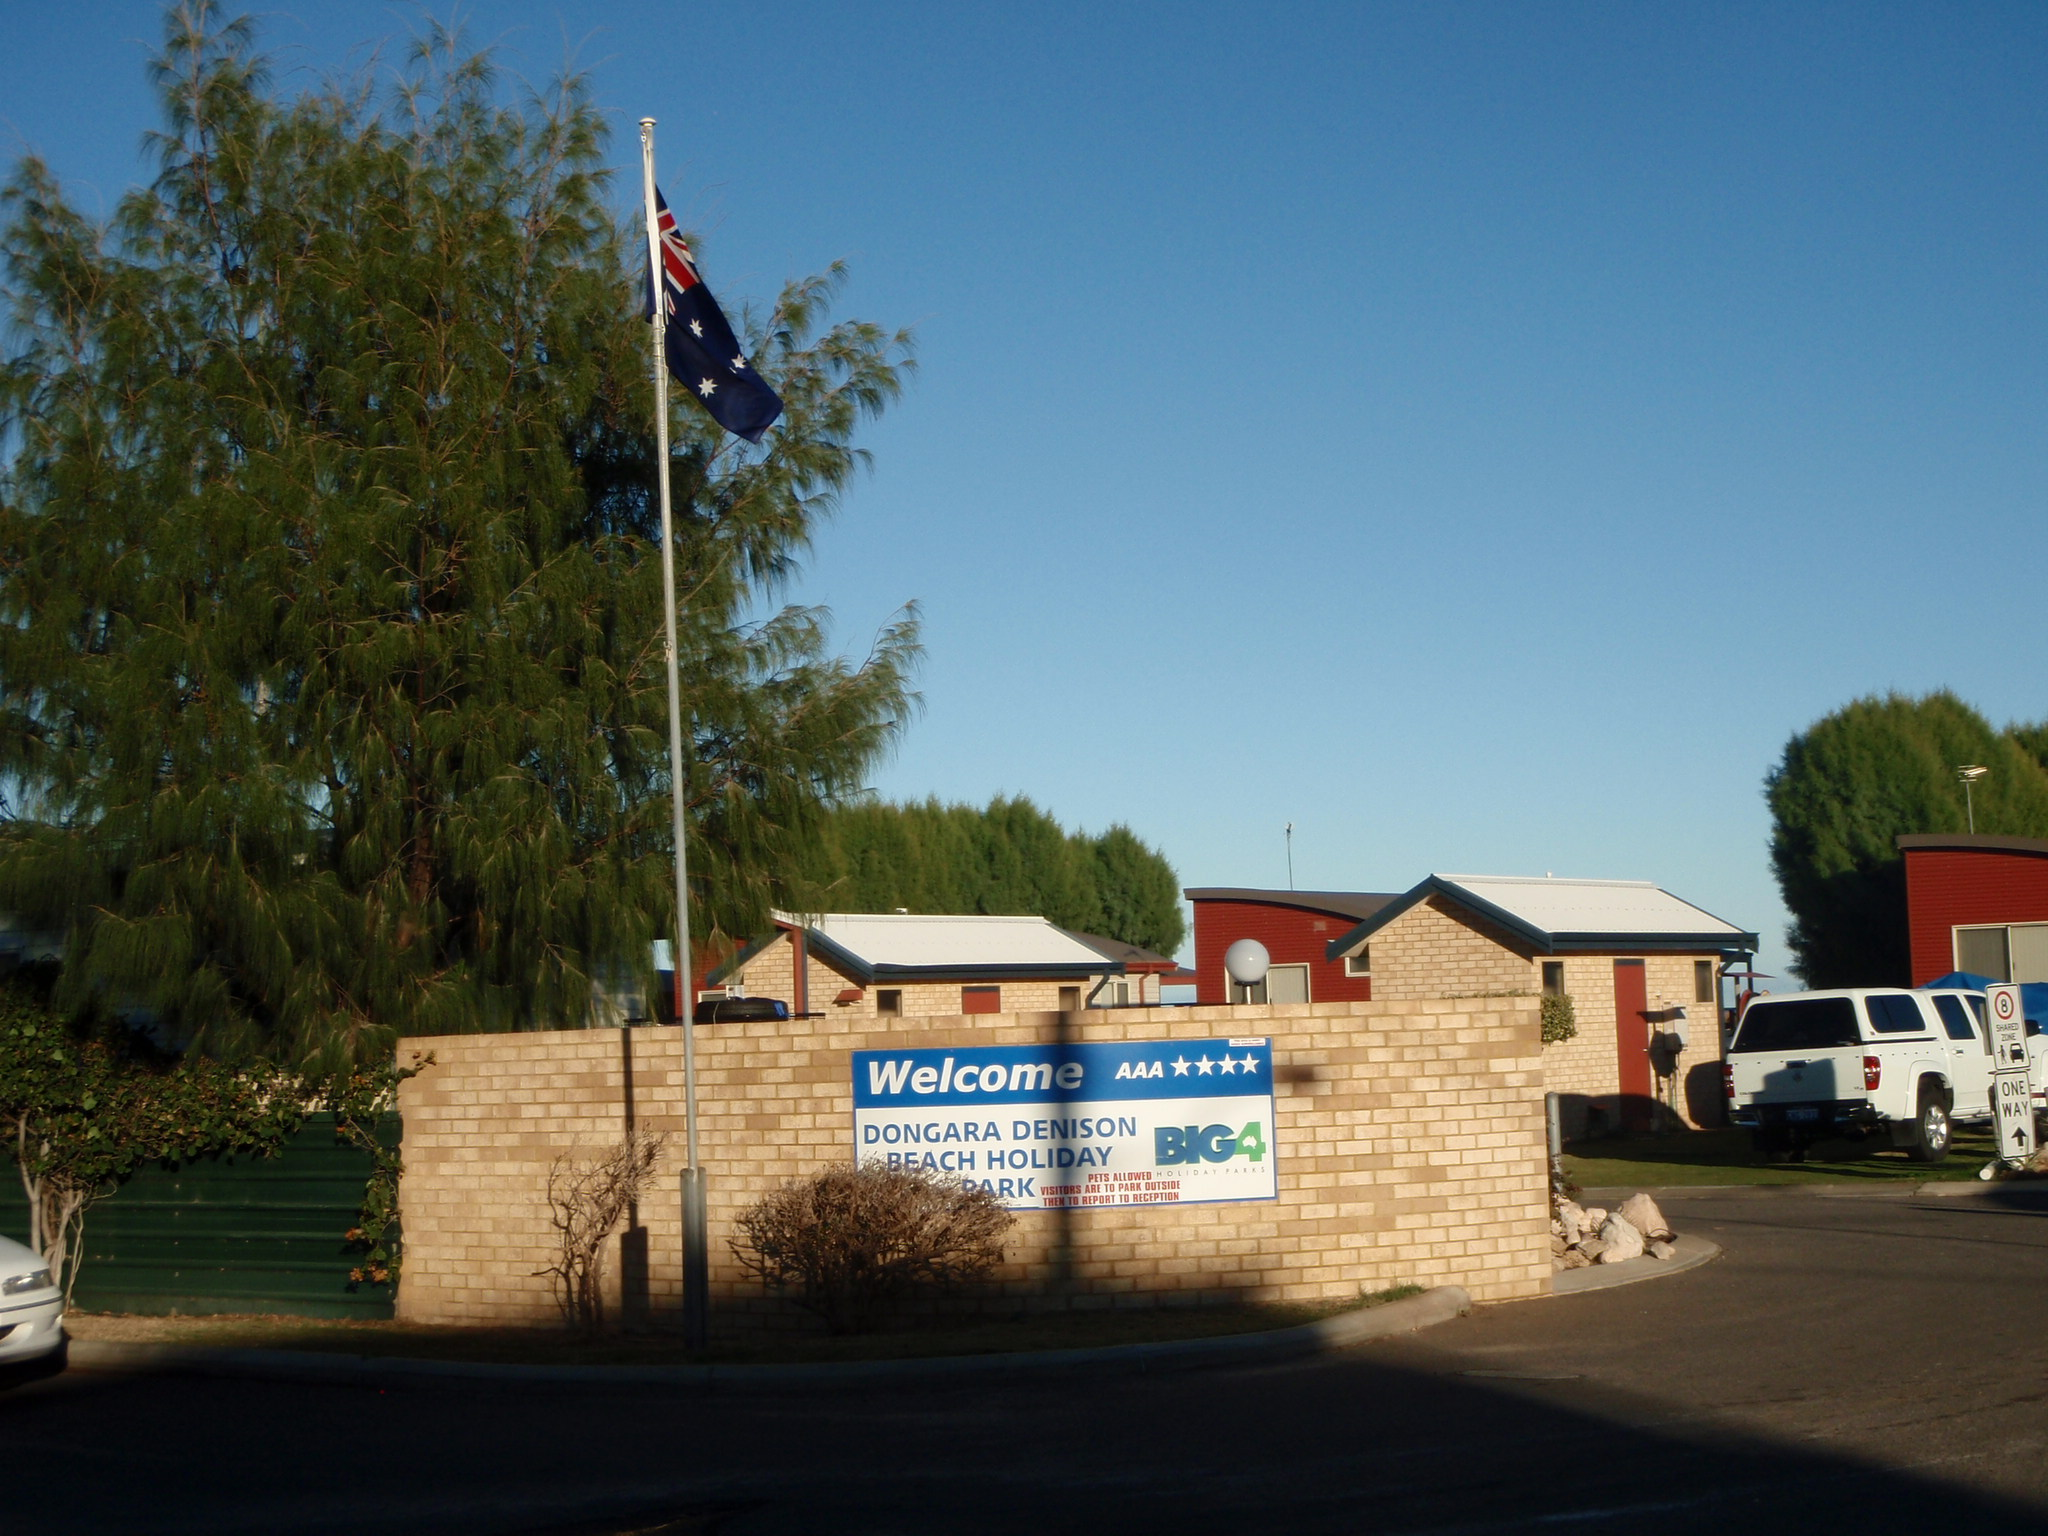 Dongara Denison Beach Holiday Park